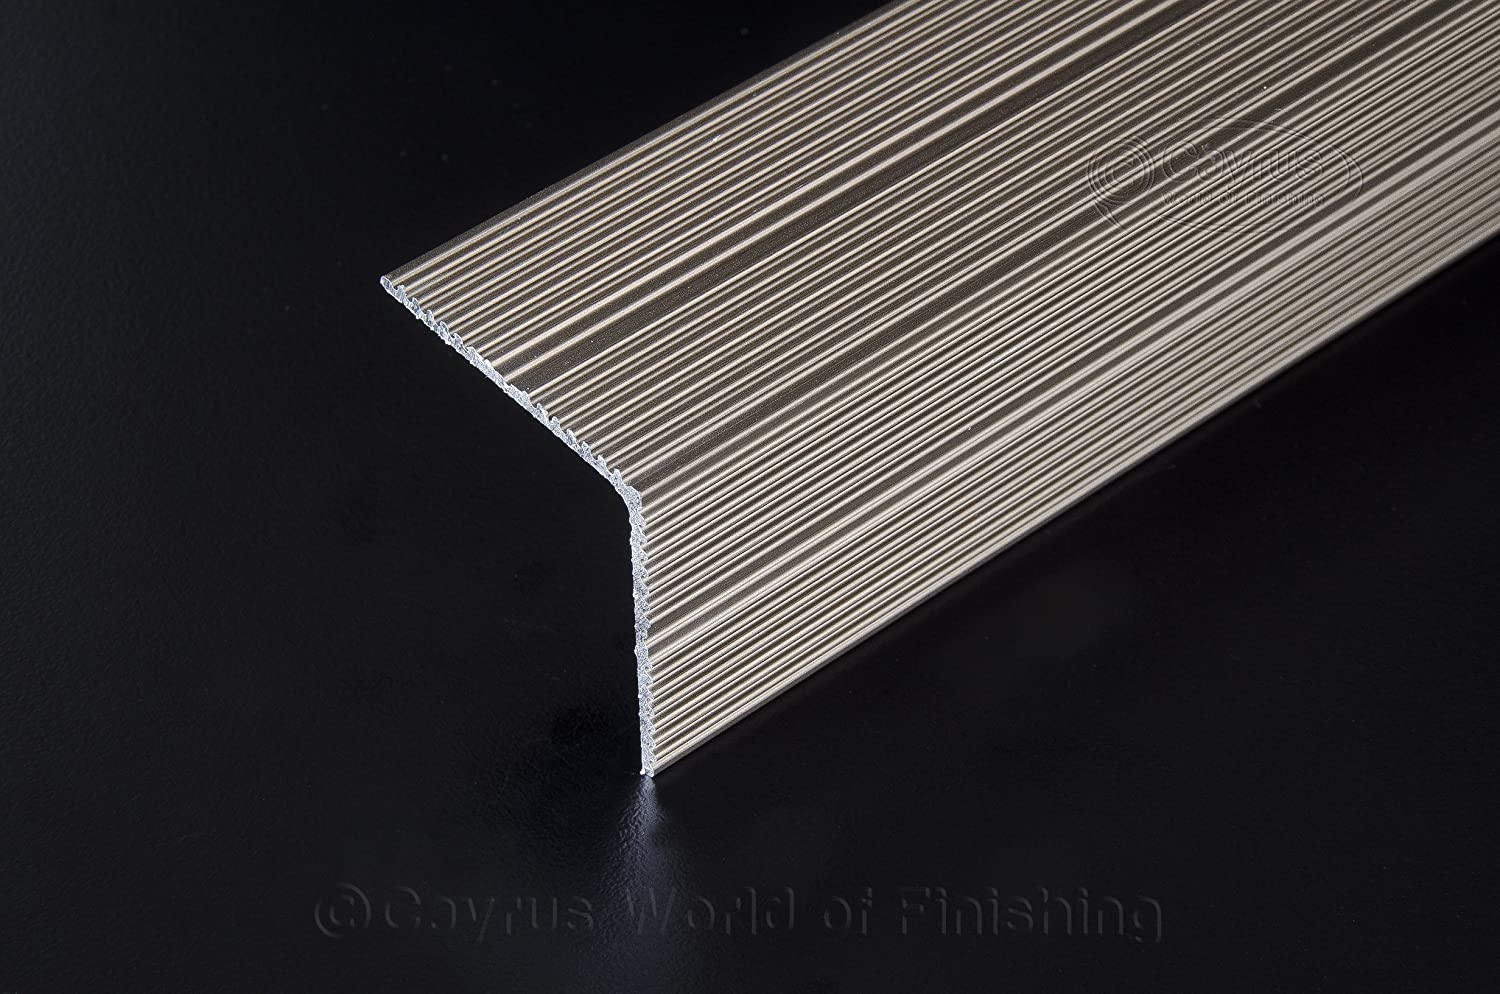 SELF ADHESIVE ALUMINIUM ANTI NON SLIP STAIR EDGE NOSING -EDGING TRIM- 35 x 35mm A34 (Anodised Silver) cayrus